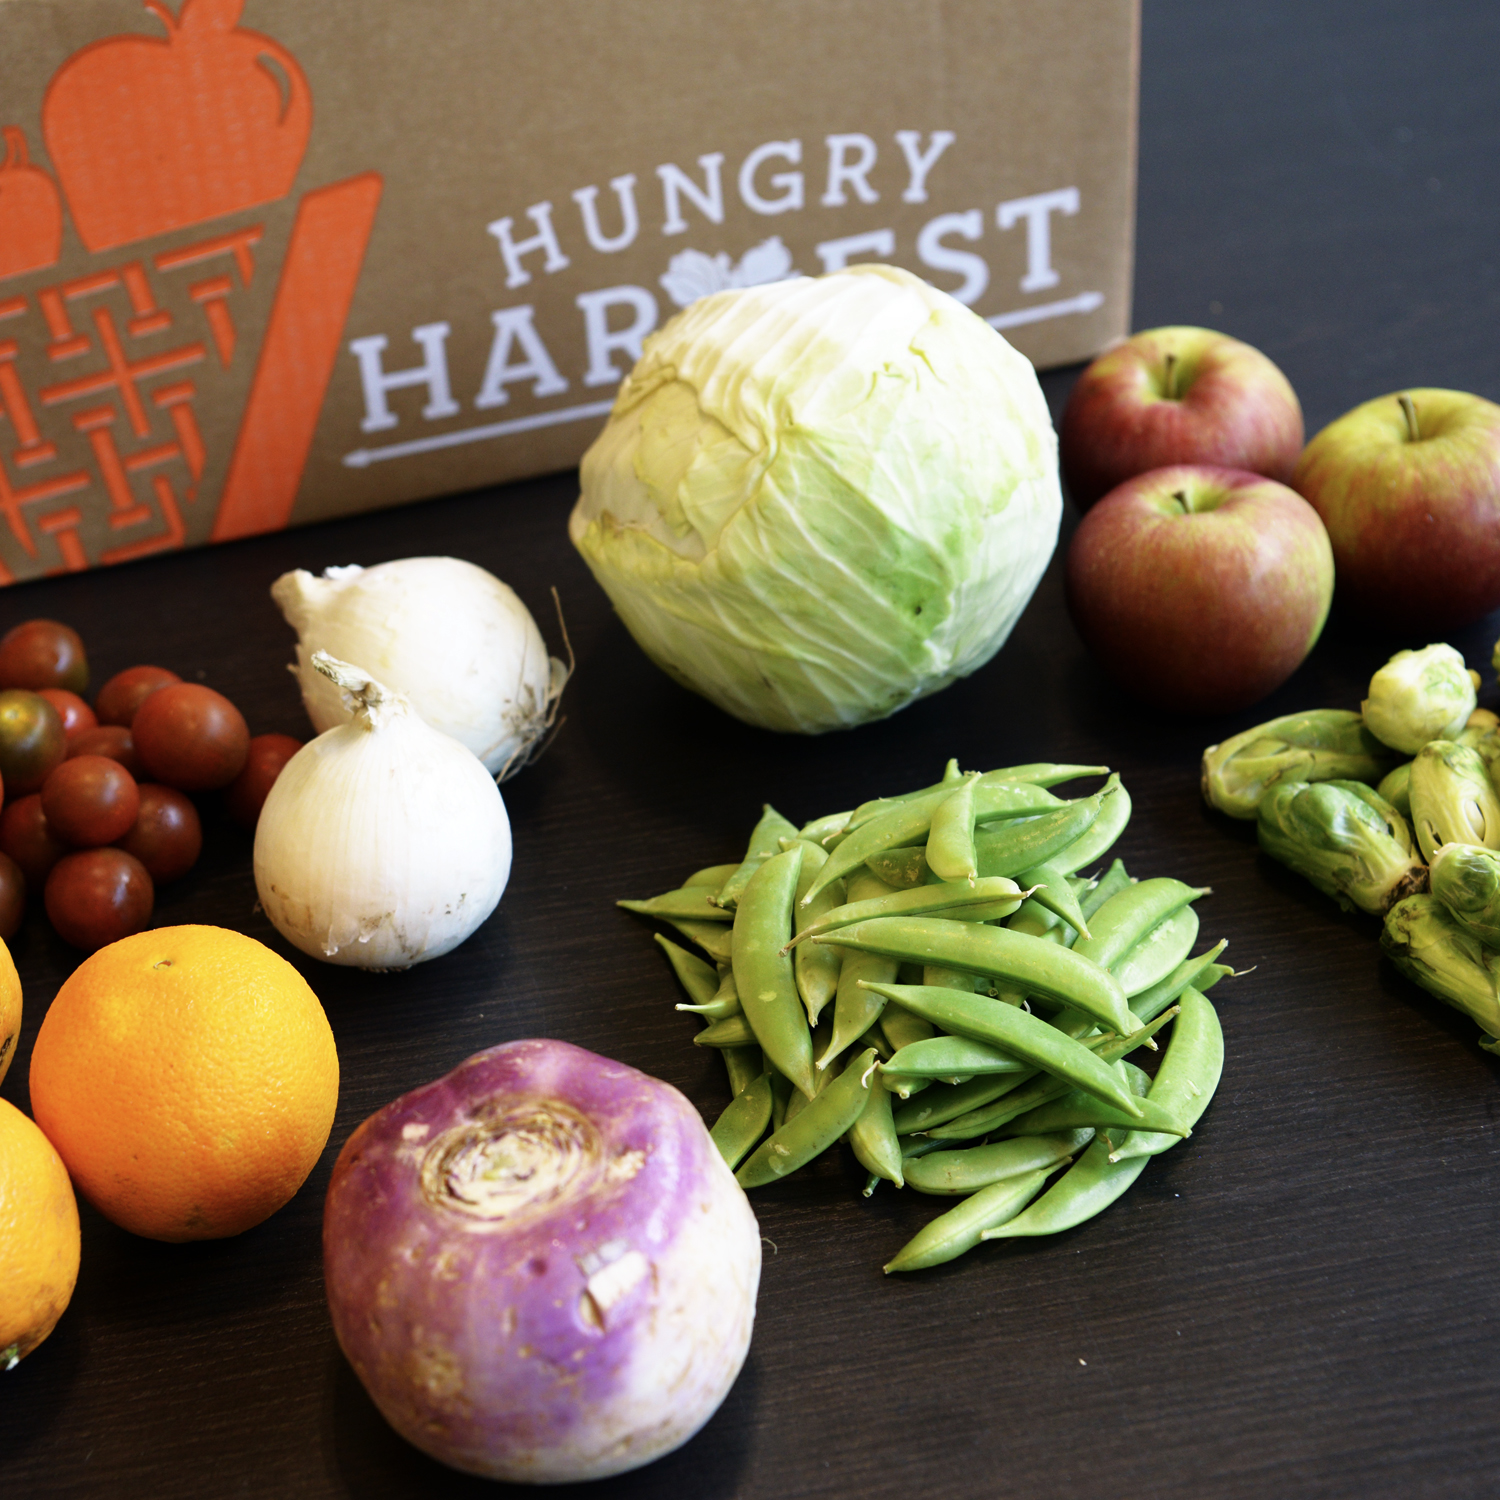 August 17, 2018 - Tomatoes, Onions, Cabbage, Apples, Brussels Sprouts, Snap Peas, Turnips, Navel OrangesFind the recipes here